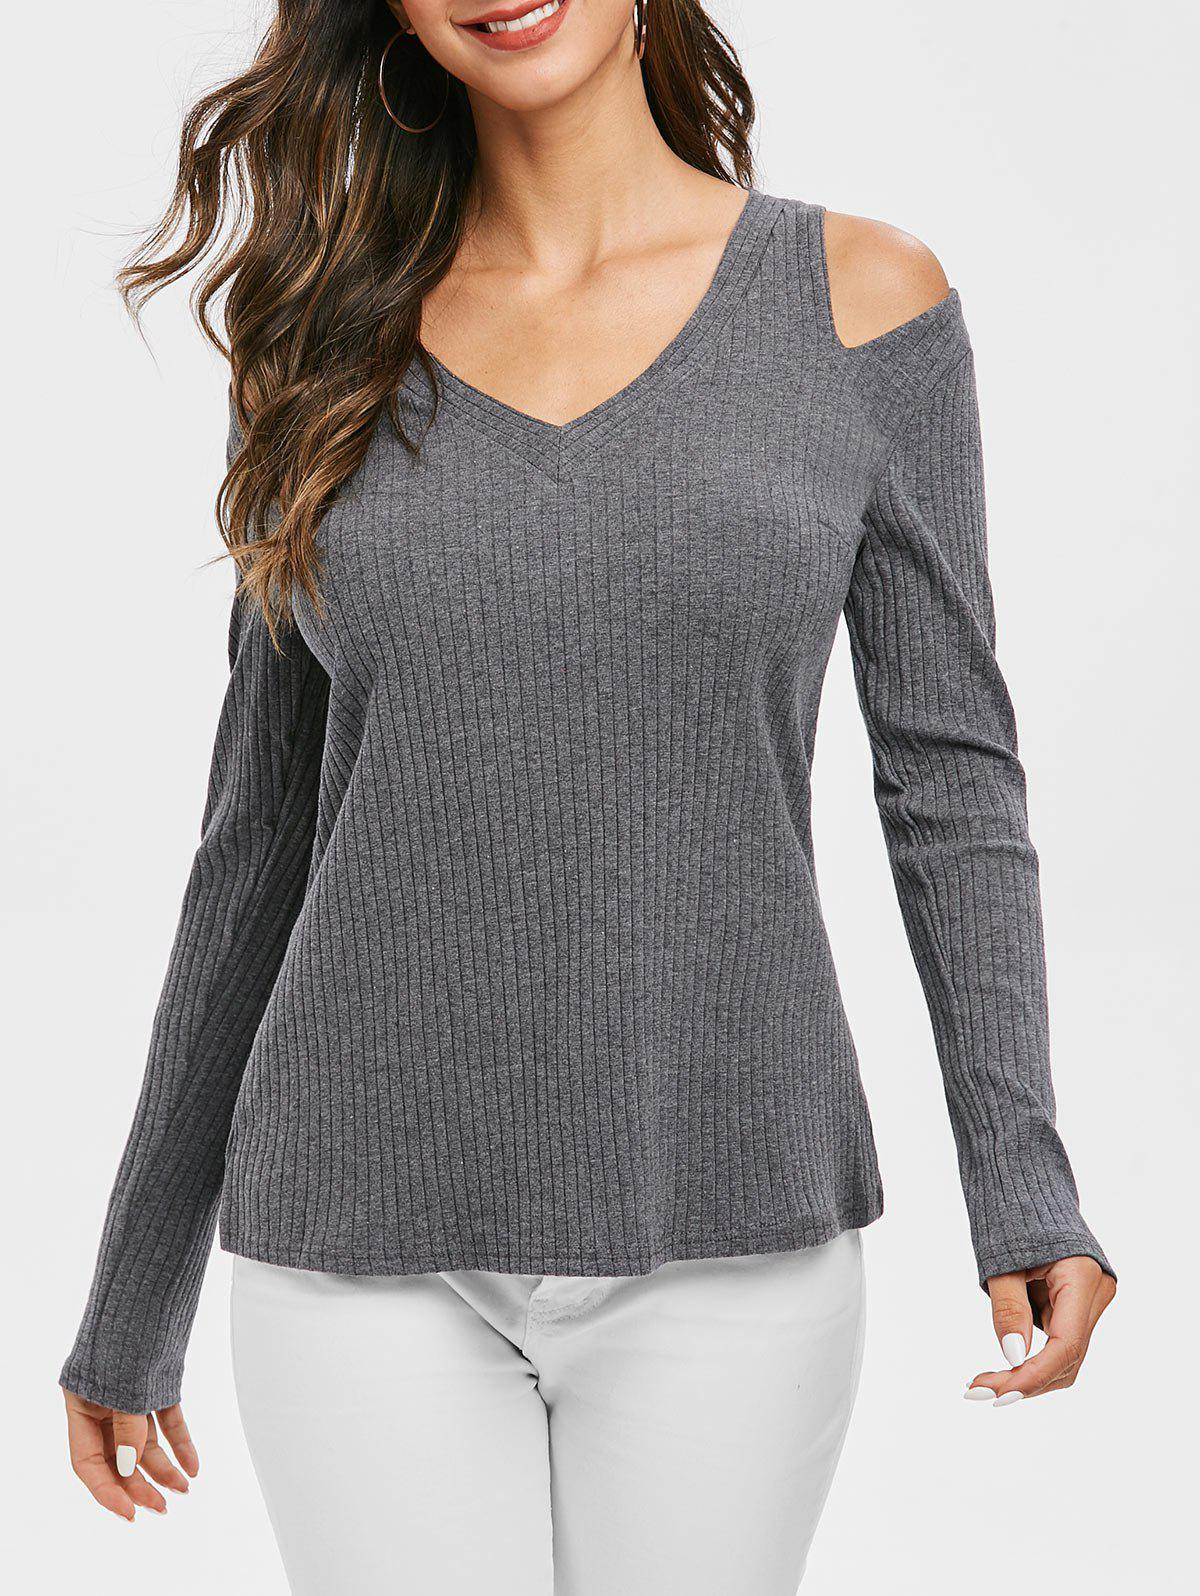 Chic Cut Out Ribbed V Neck Knitwear